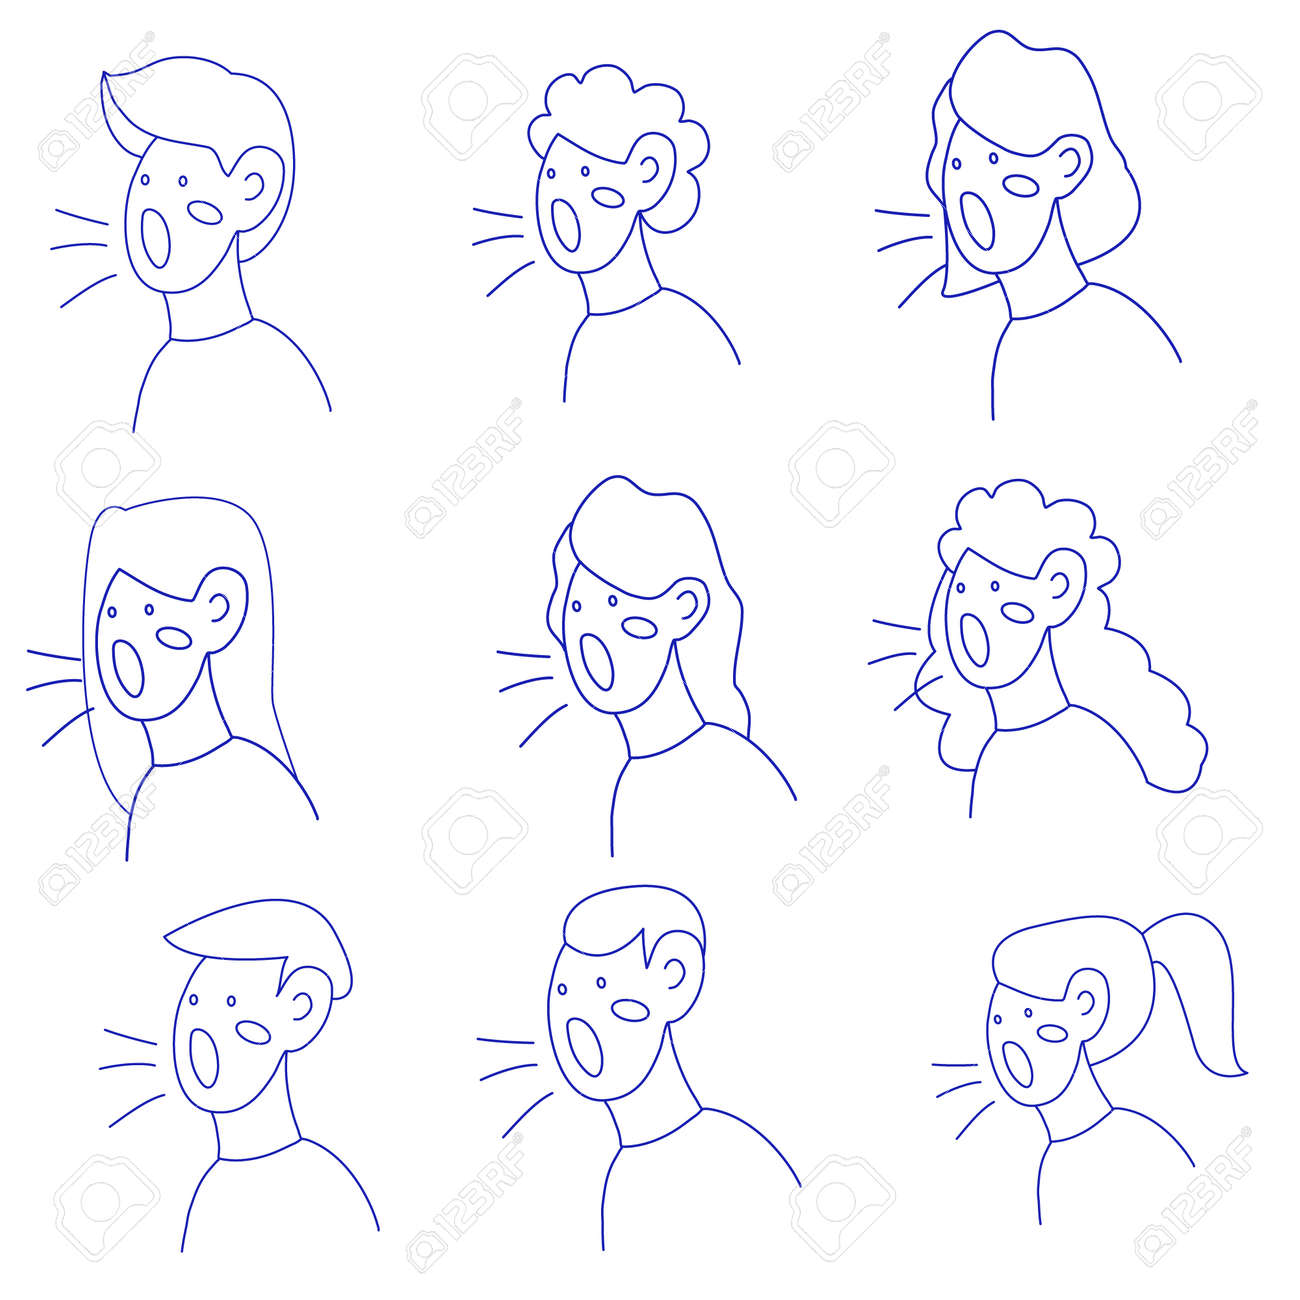 Vector linear illustration, silhouettes of people's heads expressing their opinions - 154757084